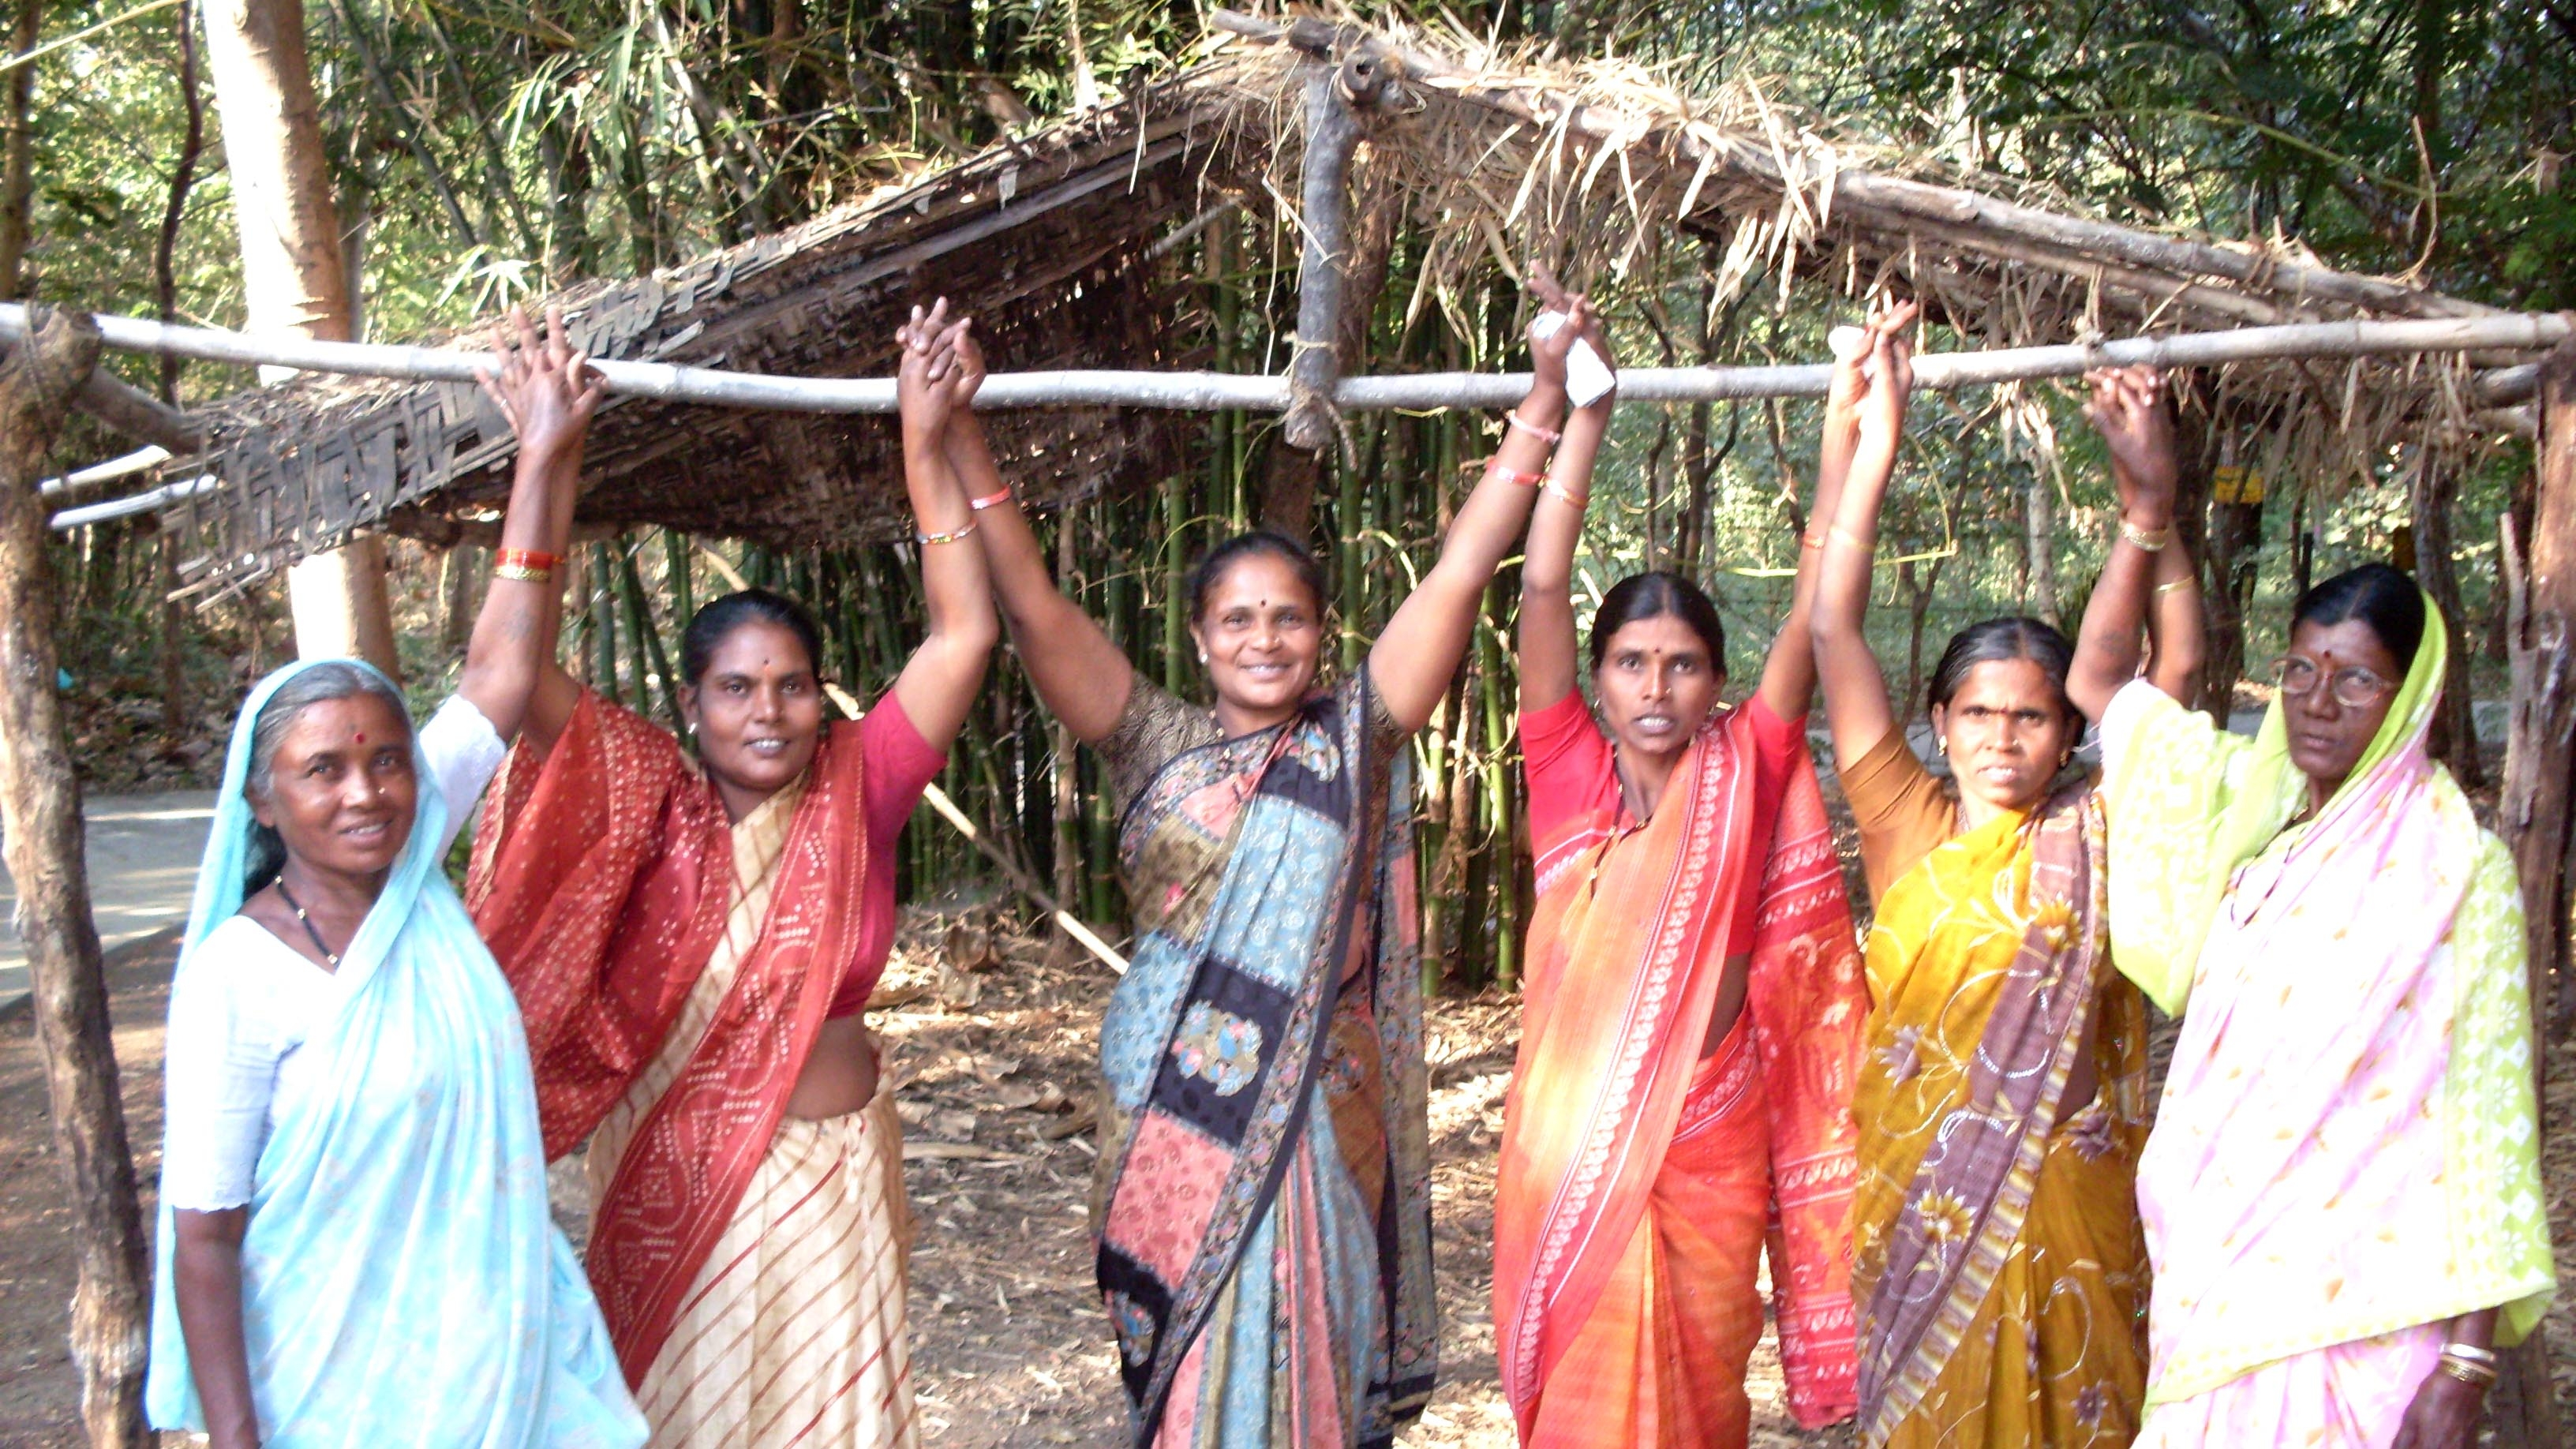 essay on women empowerment in rural india Enterprise formation and suggests meaningful steps that could be taken up towards women empowerment and economic development by corporate houses in his classic essay one of the proven ways to improve women empowerment in rural india has been the.